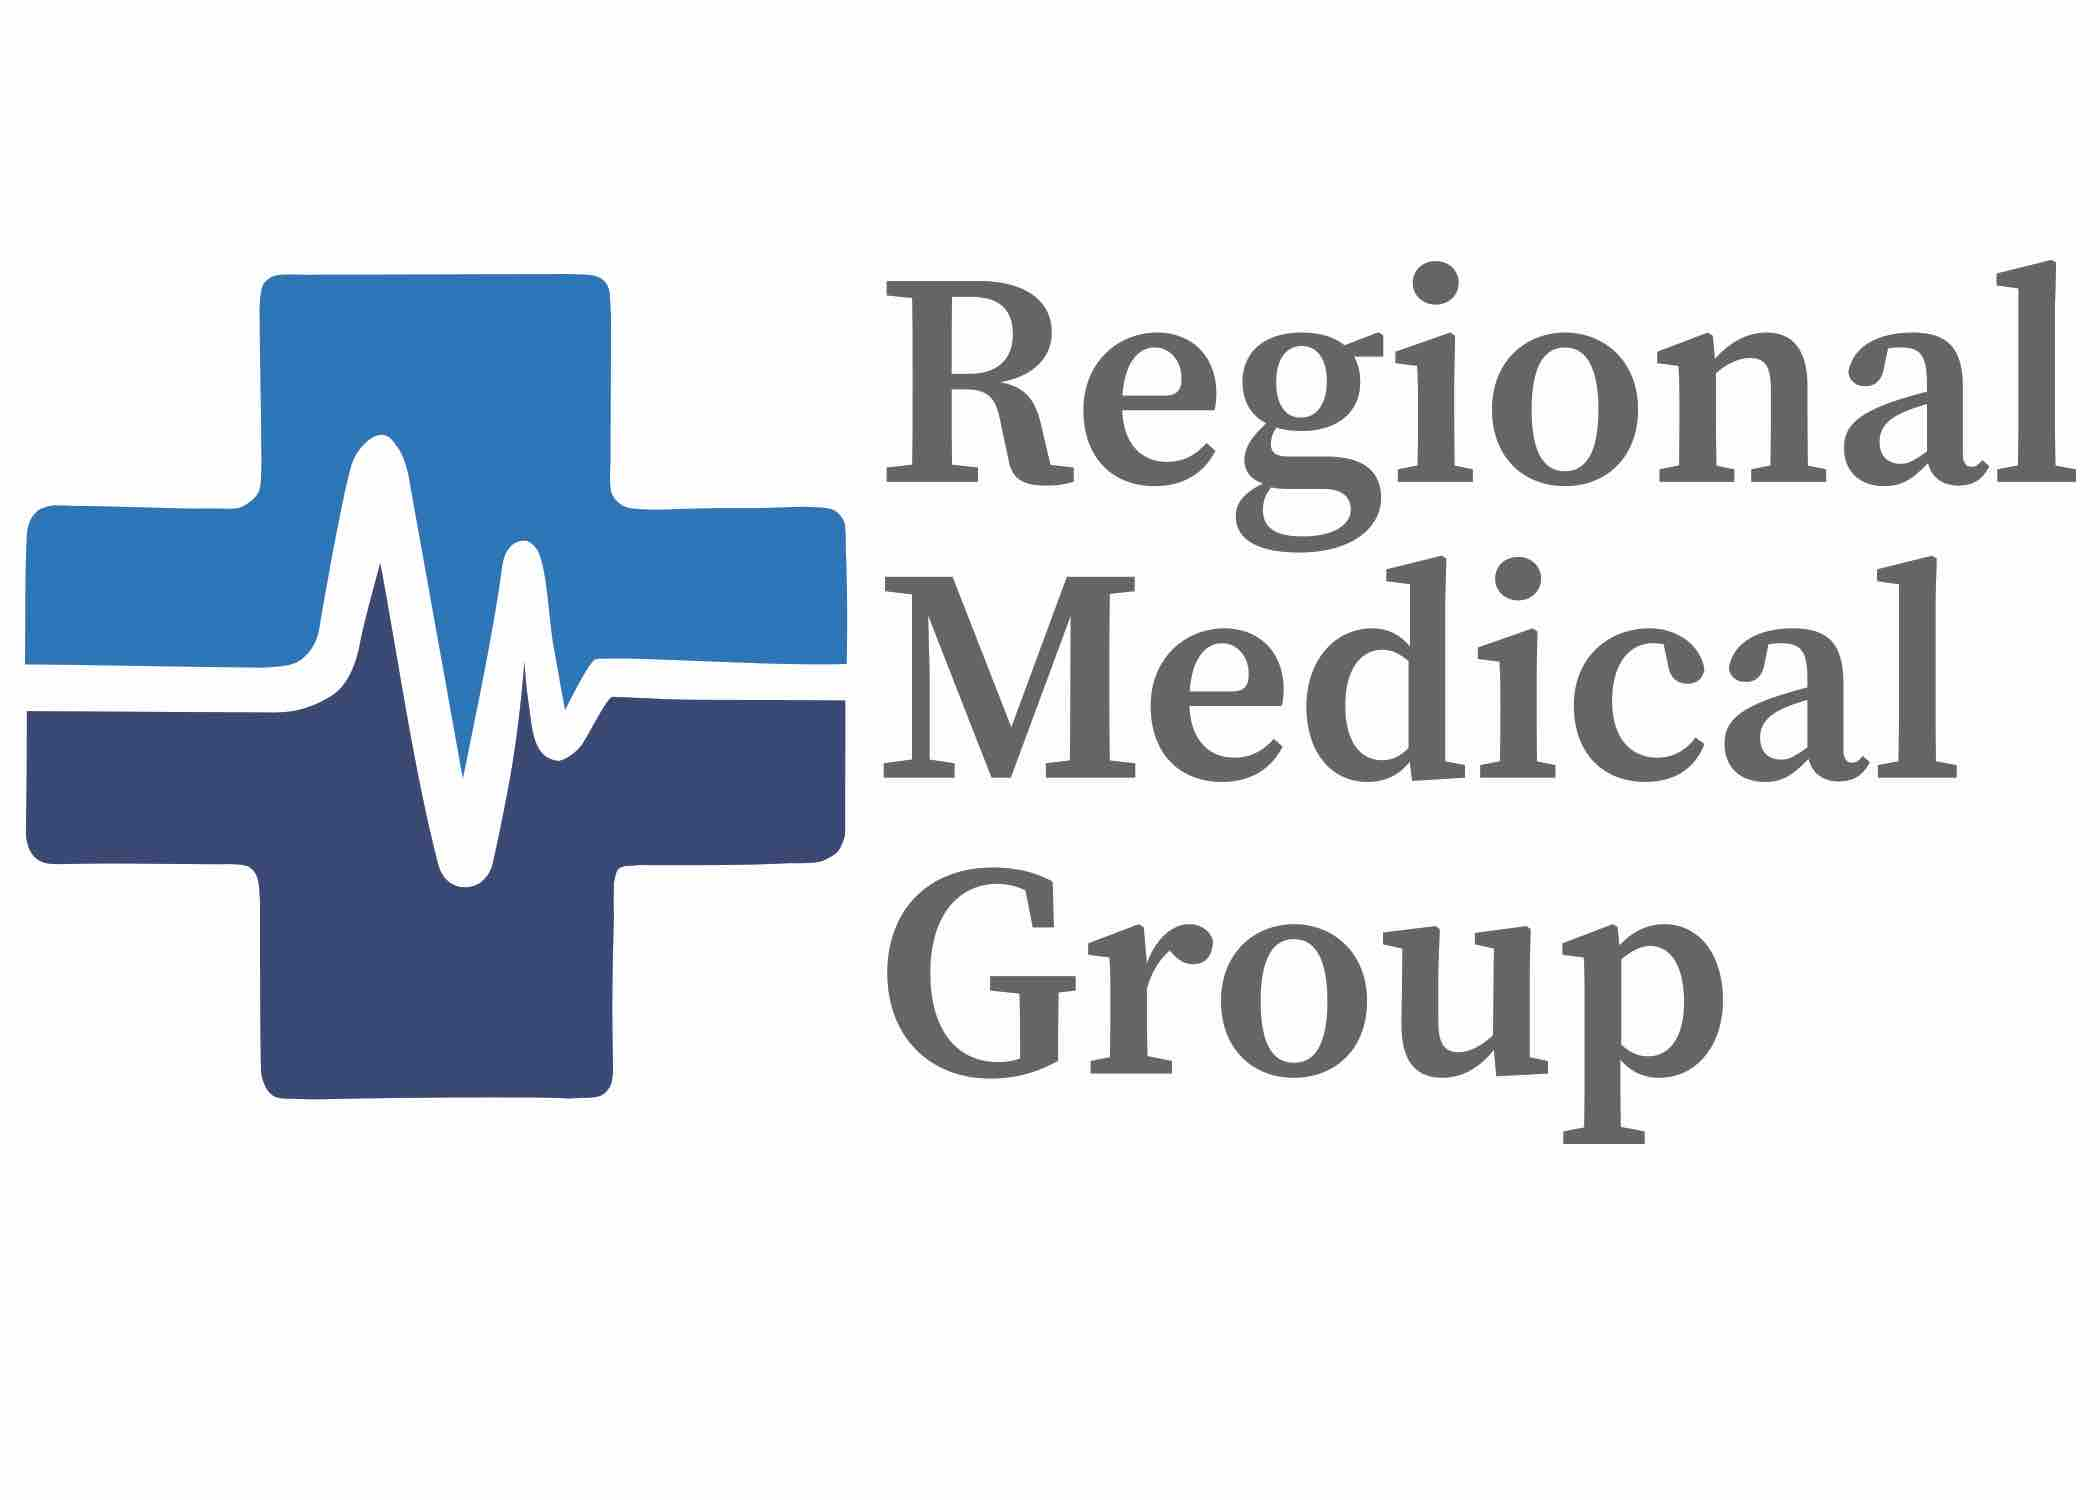 Regional Medical Group Partners with Dale Jackson to Support The Discovery Cottage During Autism Awareness Month